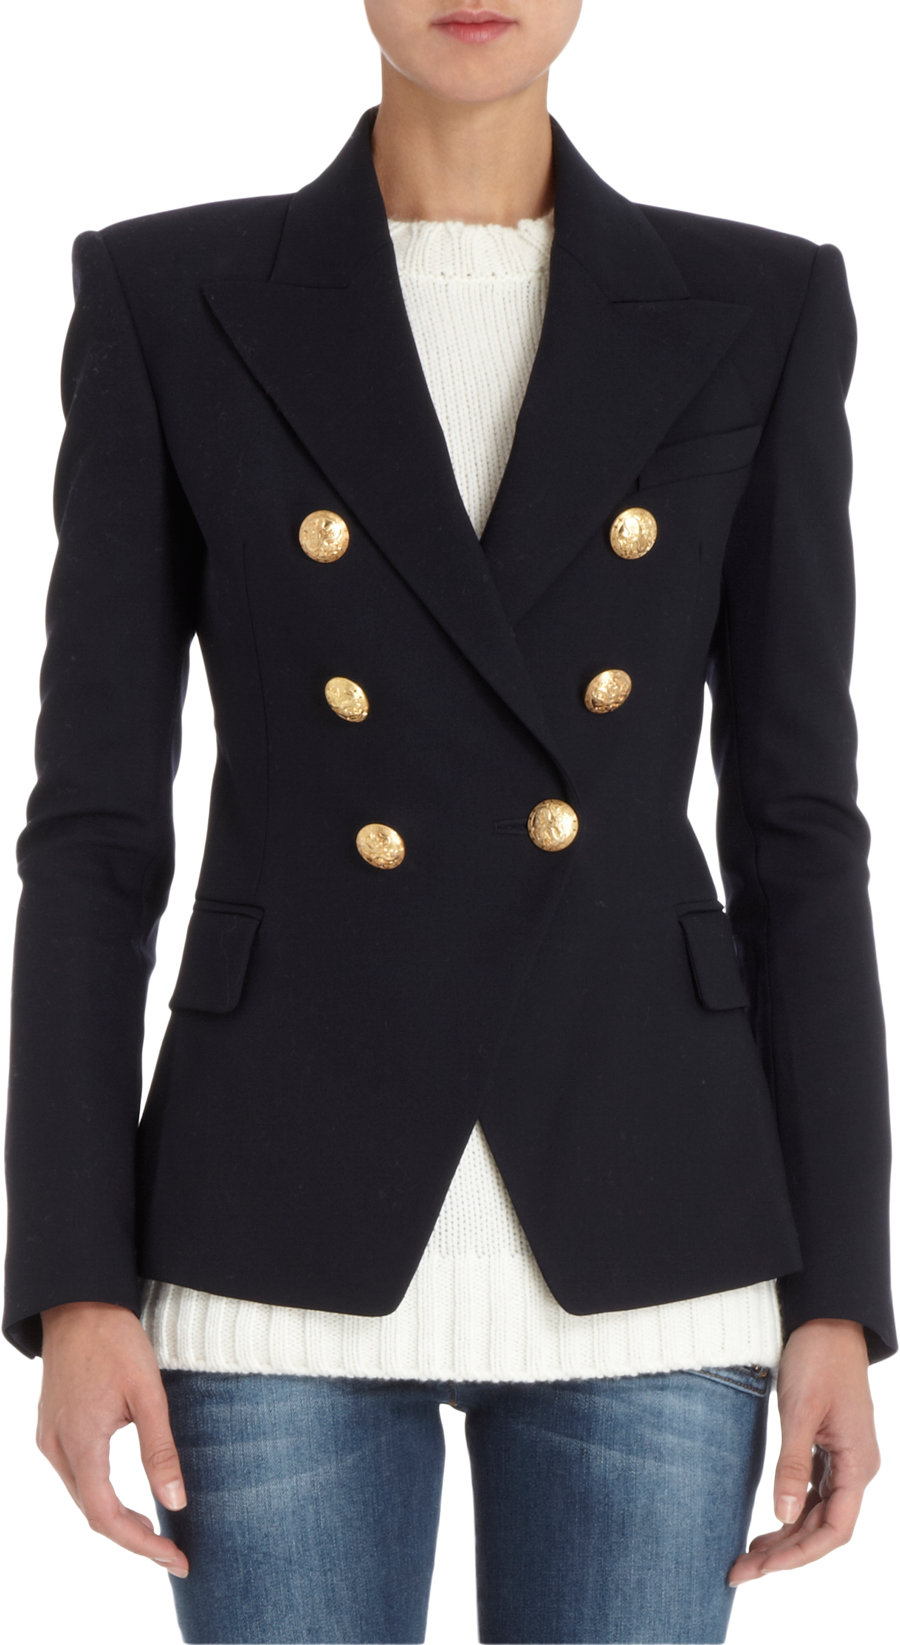 A blazer is a type of jacket resembling a suit jacket, but cut more casually. A blazer is generally distinguished from a sport coat as a more formal garment and tailored from solid colour fabrics. Blazers often have naval-style metal buttons to reflect their origins as jackets worn by boating club members.